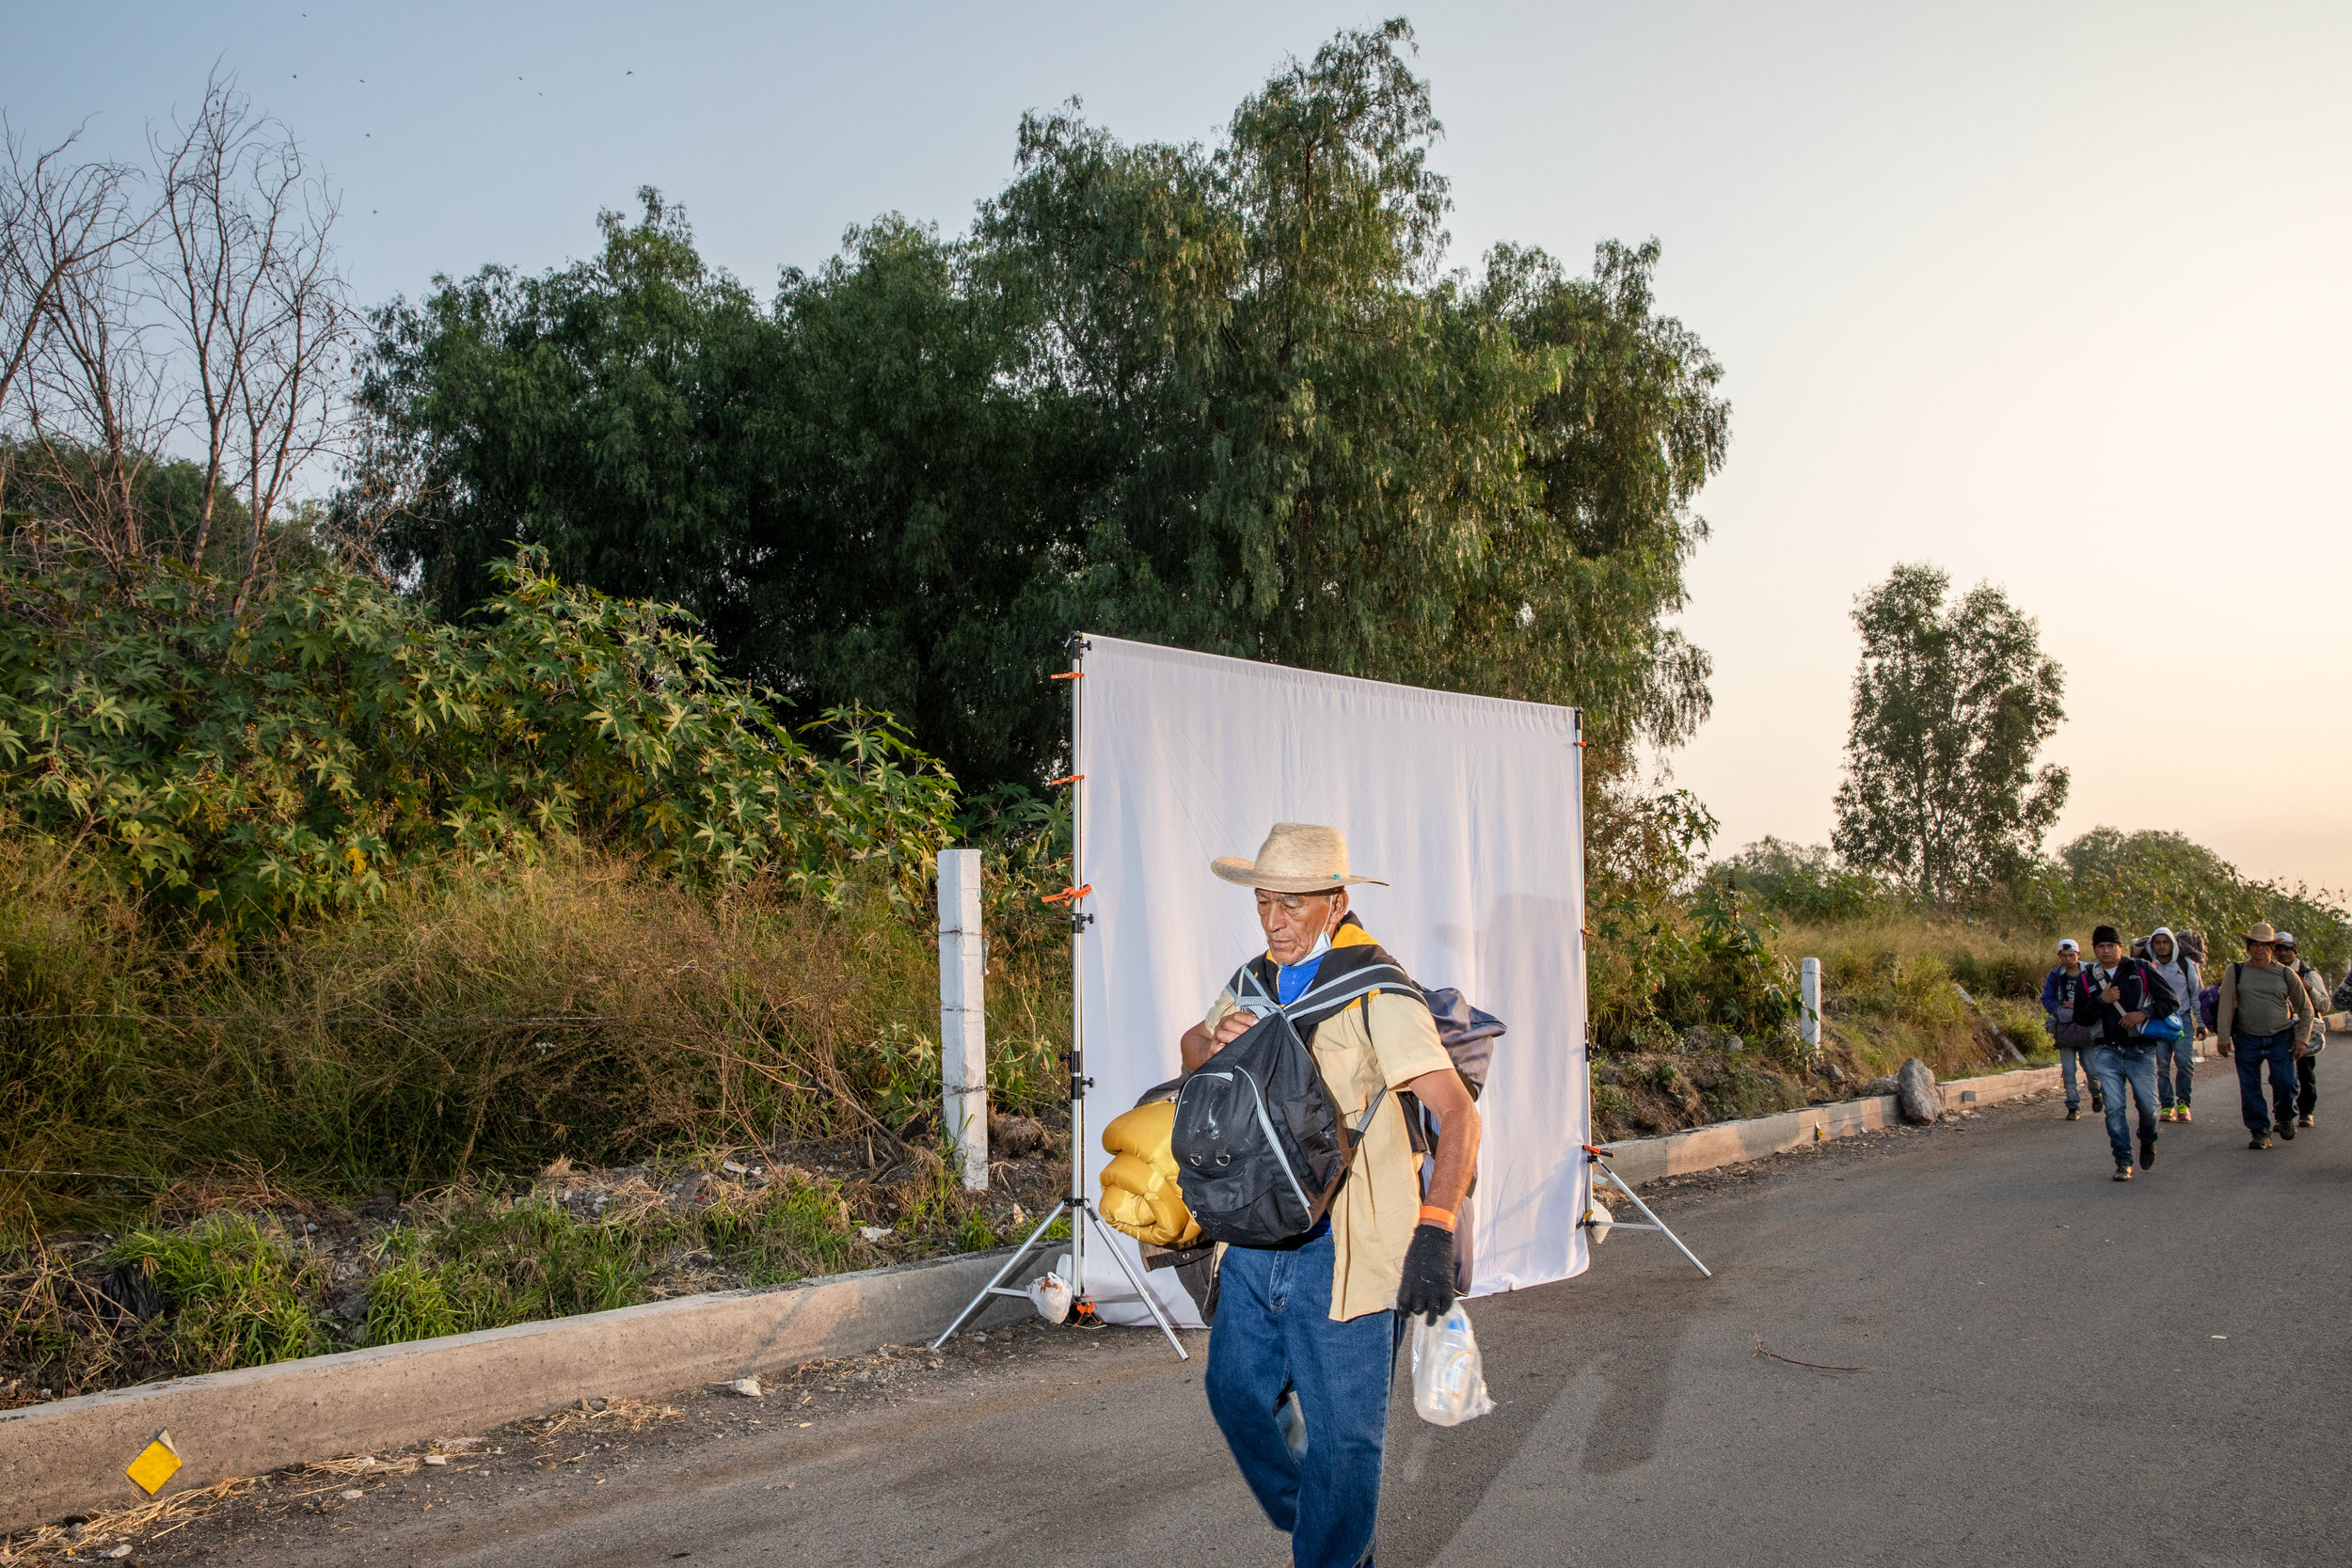 People making up the migrant caravan, traveling from Central America, walk on the highway out of Queretaro, Mexico, November 11, 2018.